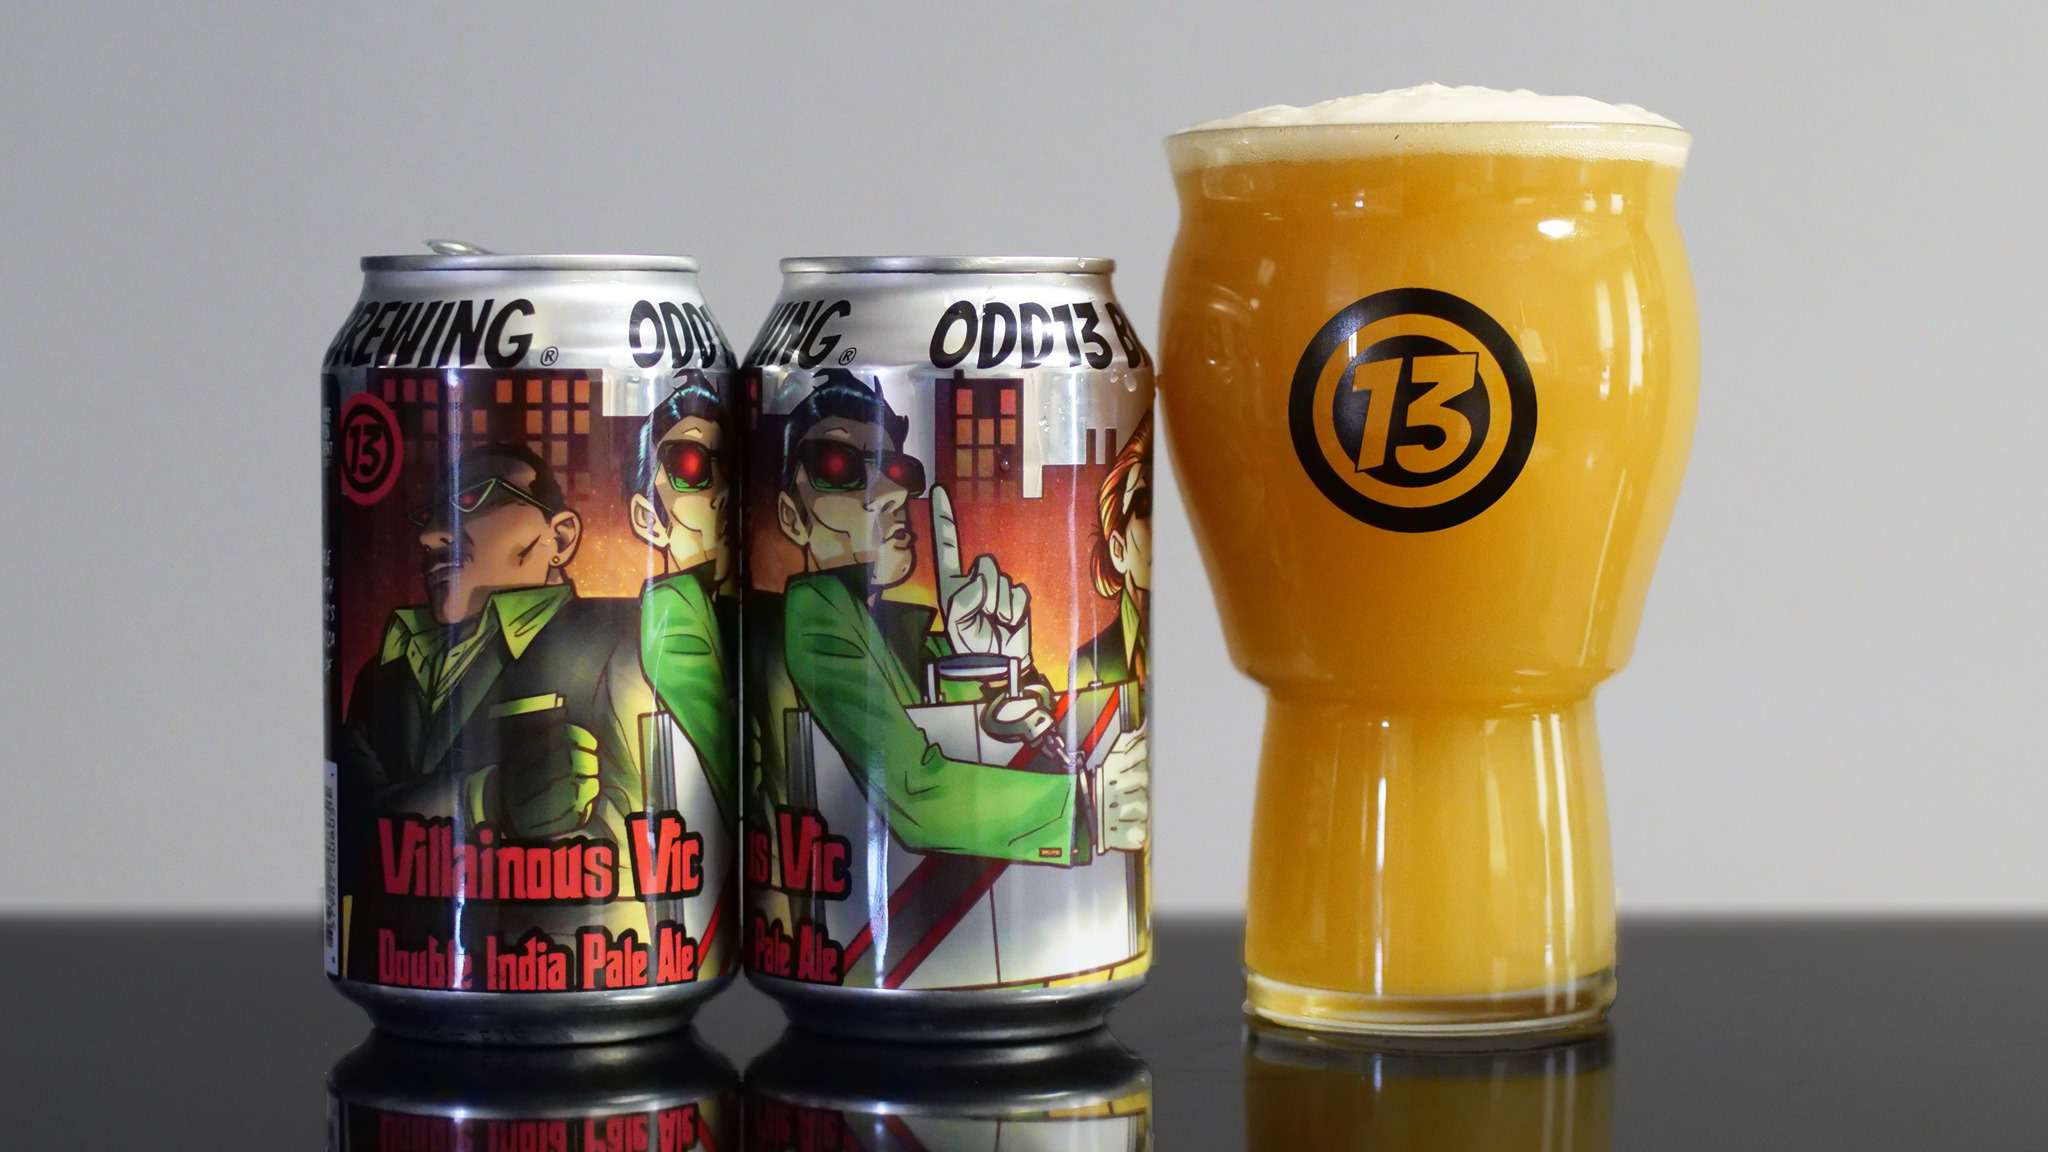 Two colorful beer cans and a Odd13 Brewing branded pint glass